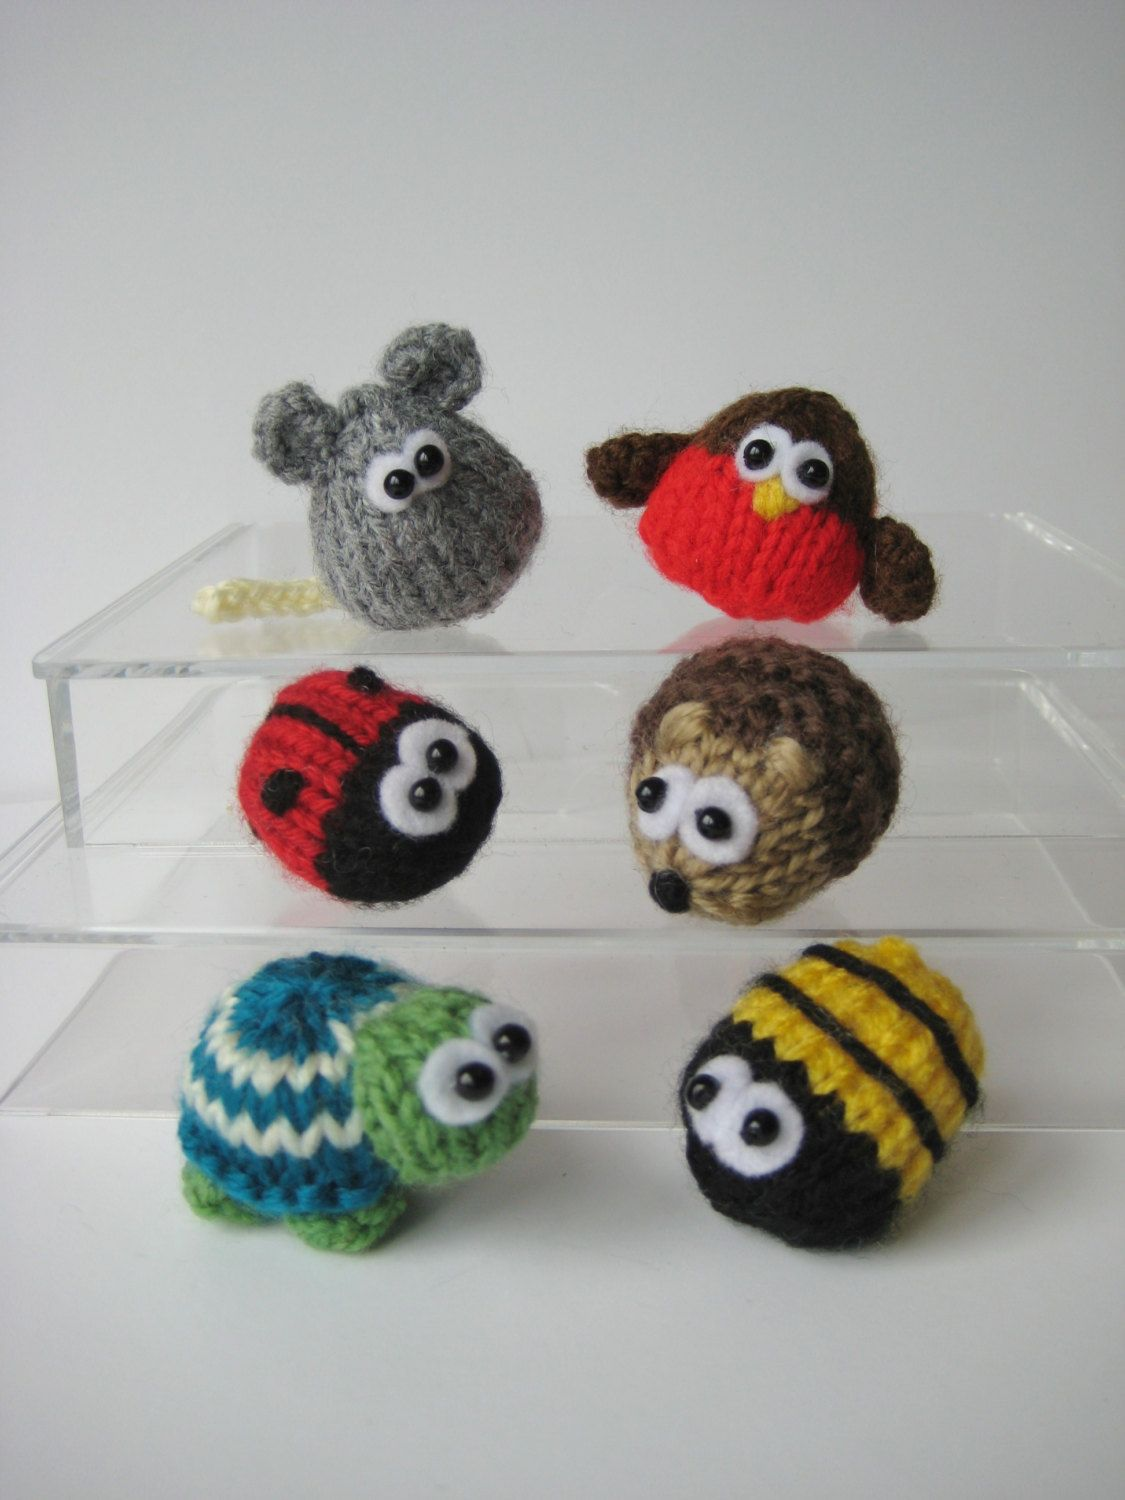 Teeny animal knitting patterns six quick to knit mini toys or teeny animal knitting patterns six quick to knit mini toys or rings with instant pattern bankloansurffo Images